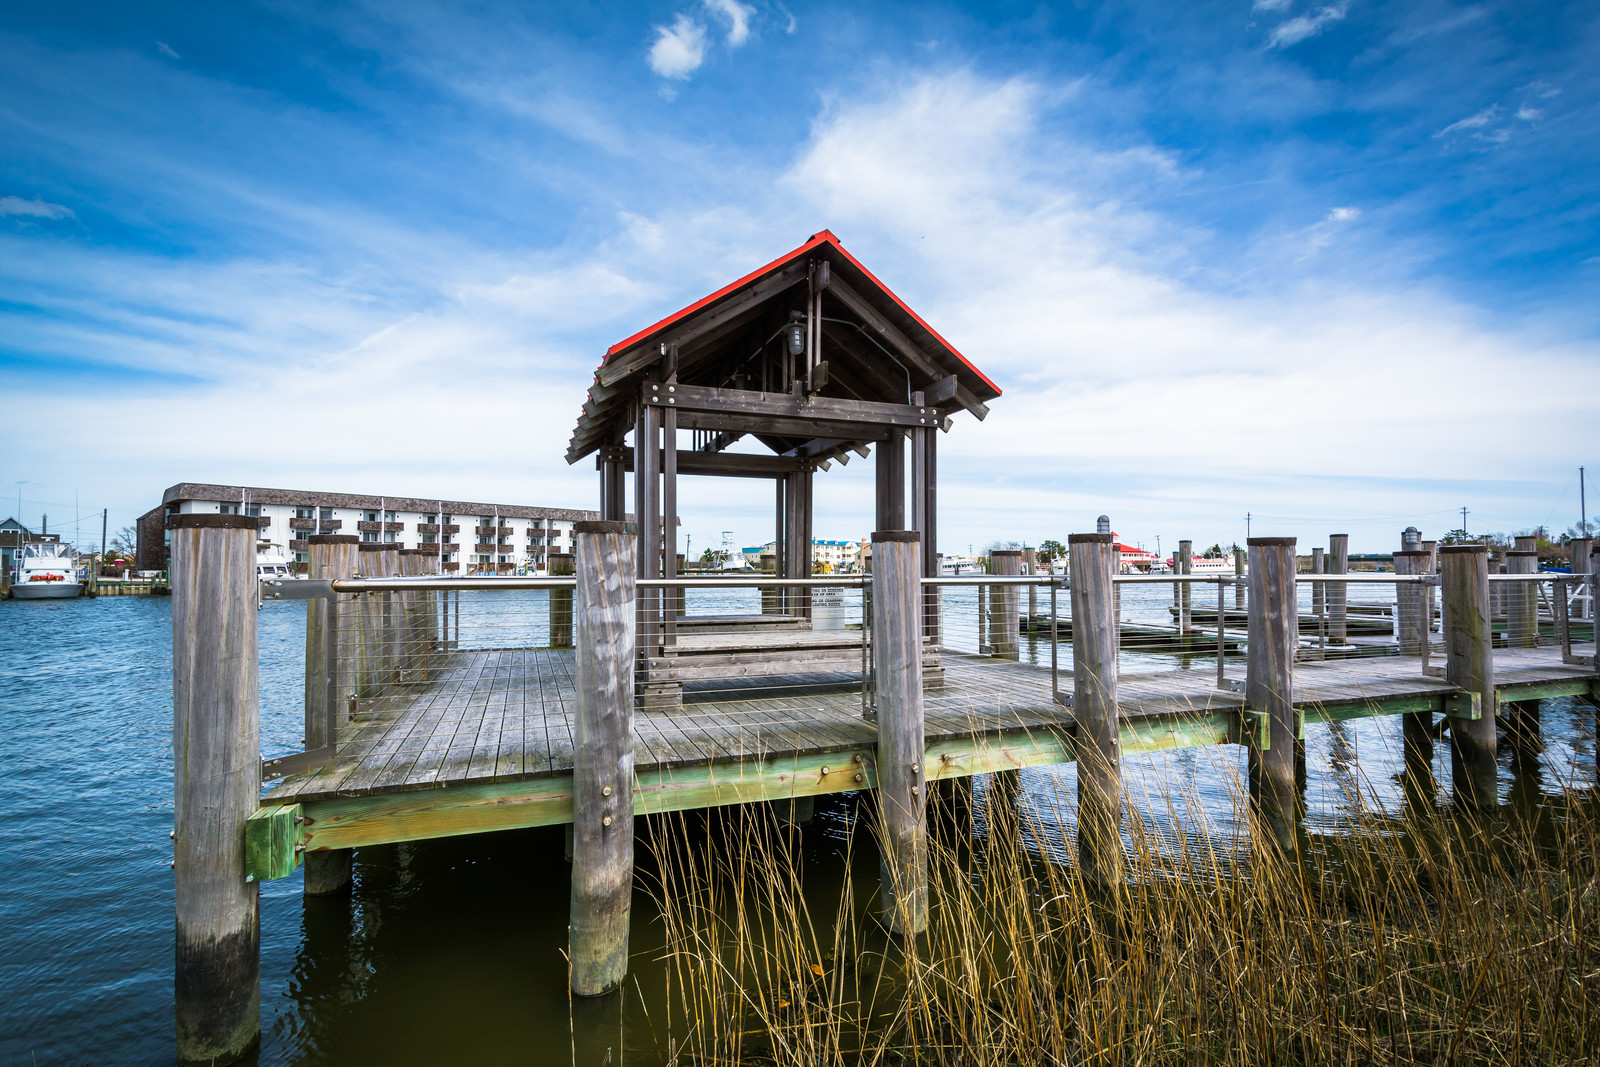 Pier in Lewes Delaware on a beautiful day with blue skies